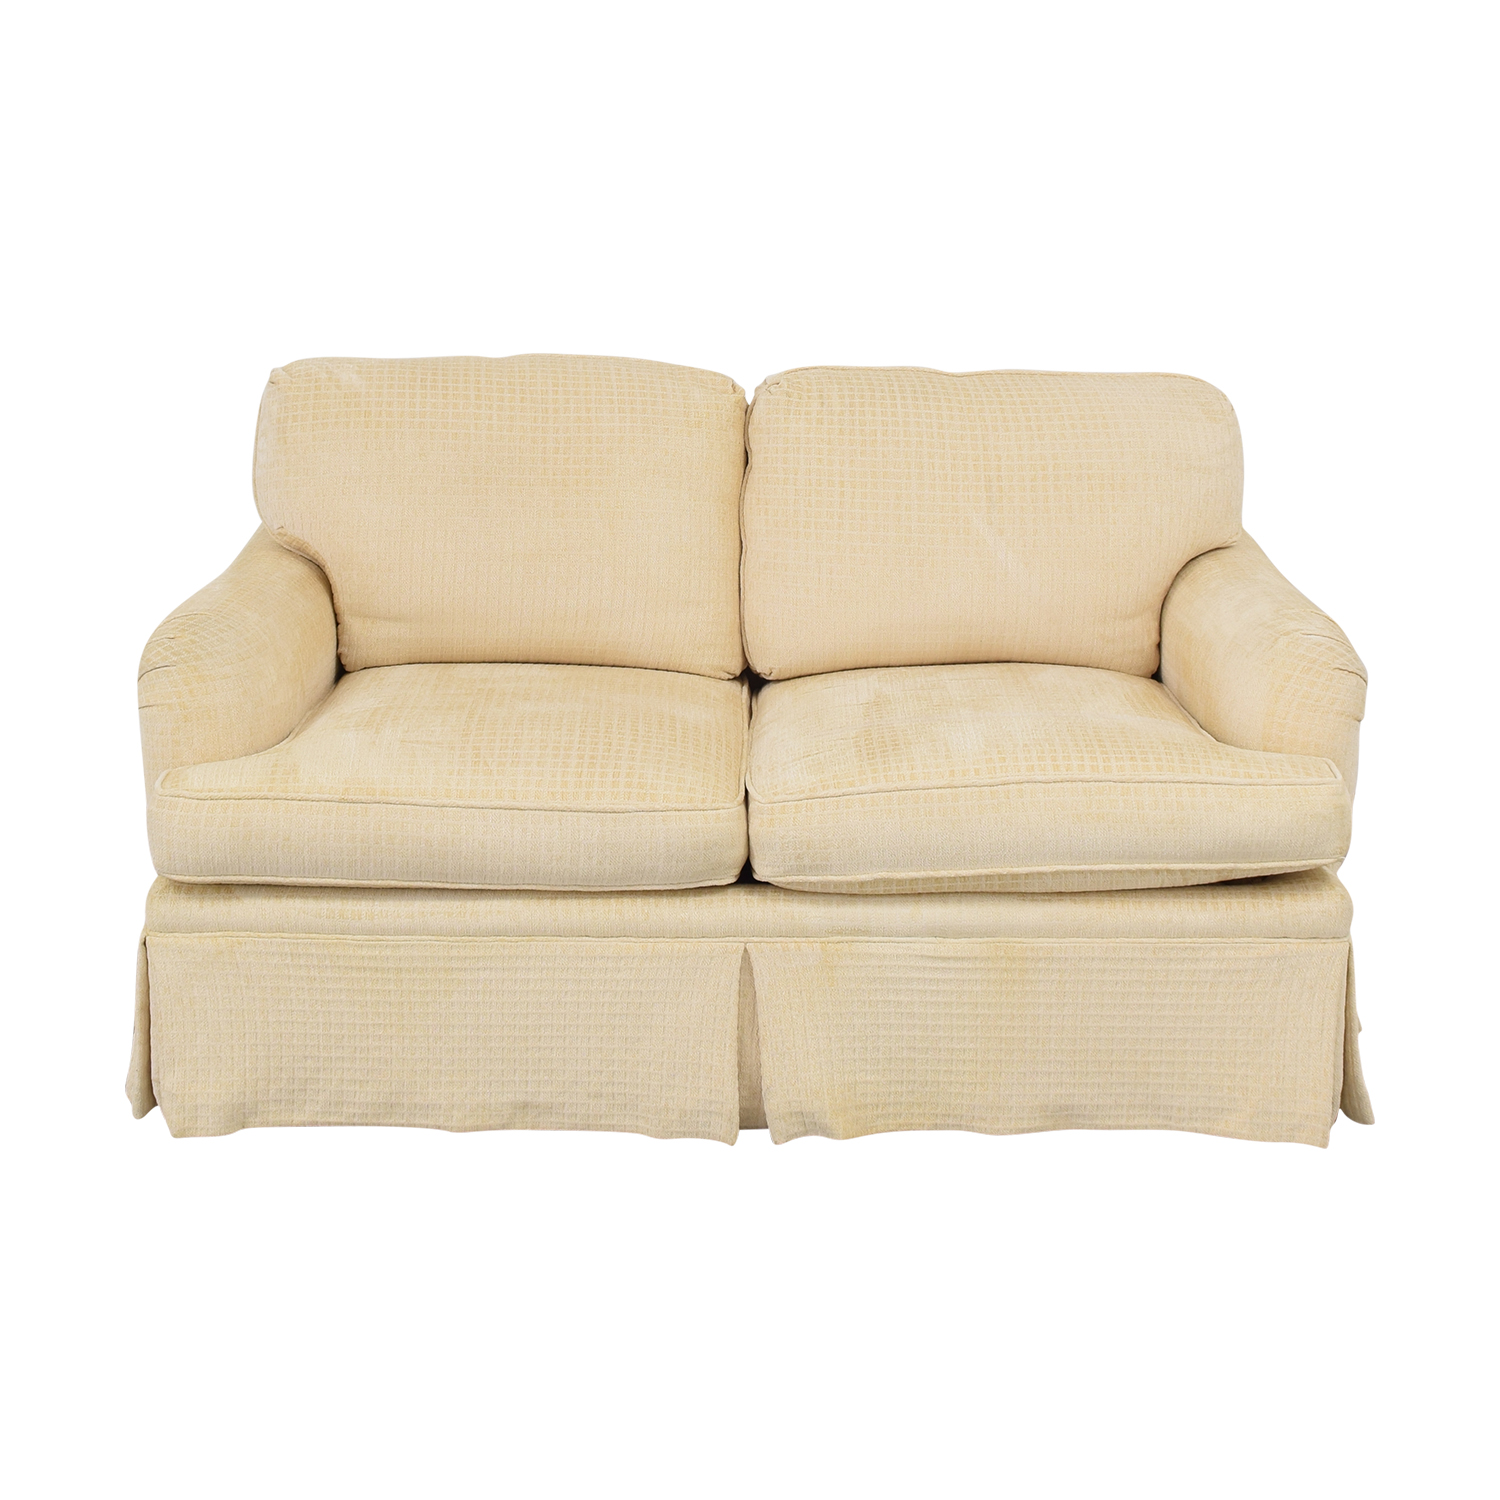 Mason-Art Mason-Art Upholstered Loveseat coupon